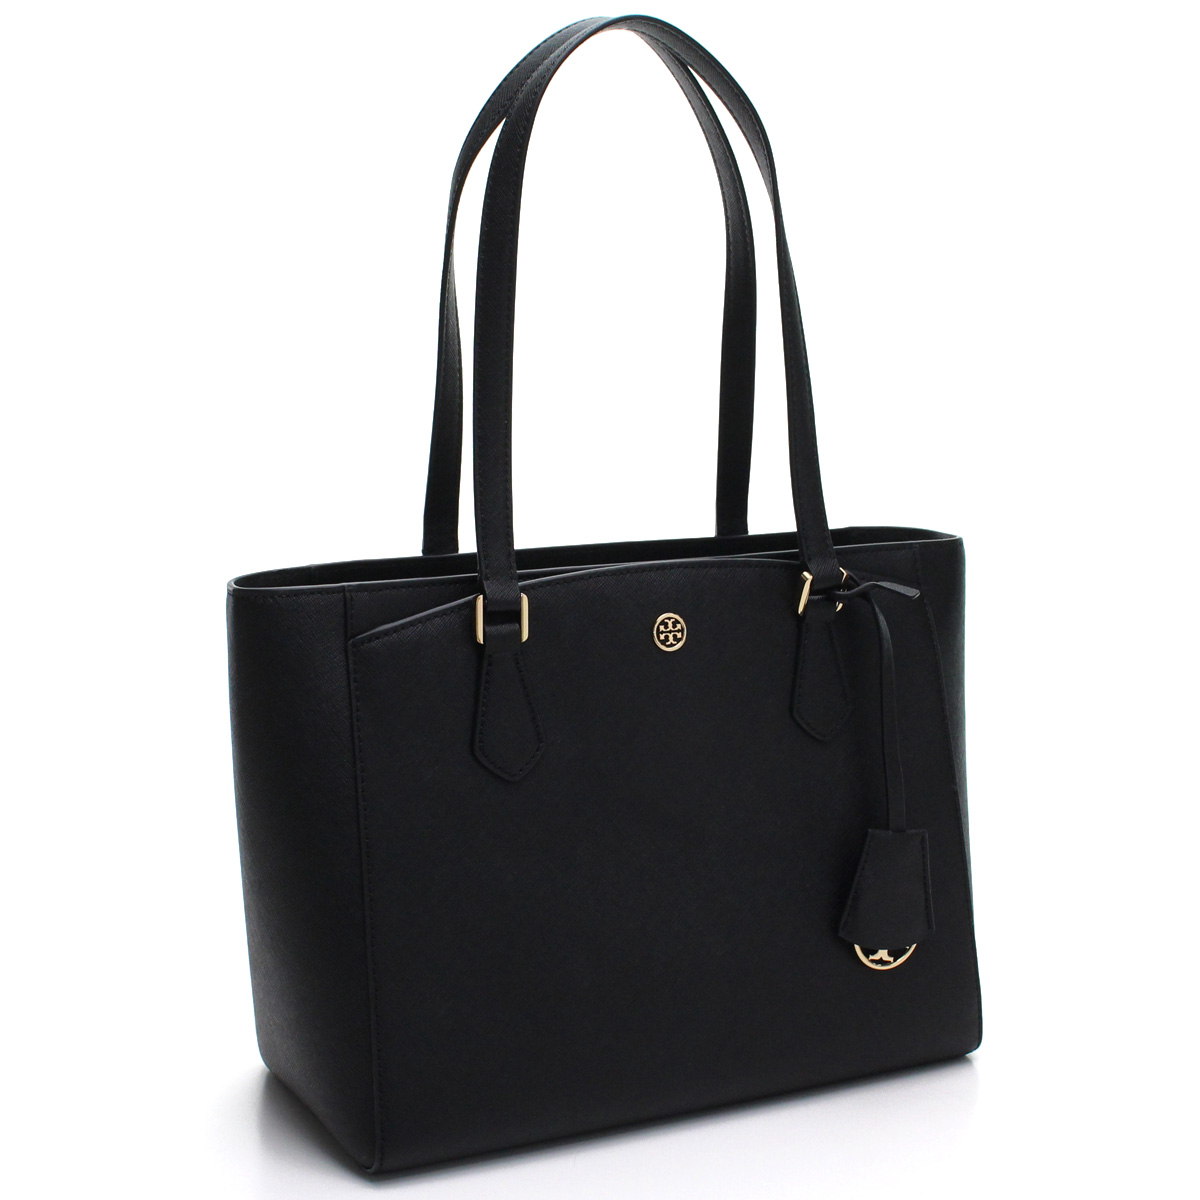 c26f4e947 Bighit The total brand wholesale: Tolly Birch TORY BURCH ROBINSON Robinson  Small tote bag 54146 001 BLACK black | Rakuten Global Market